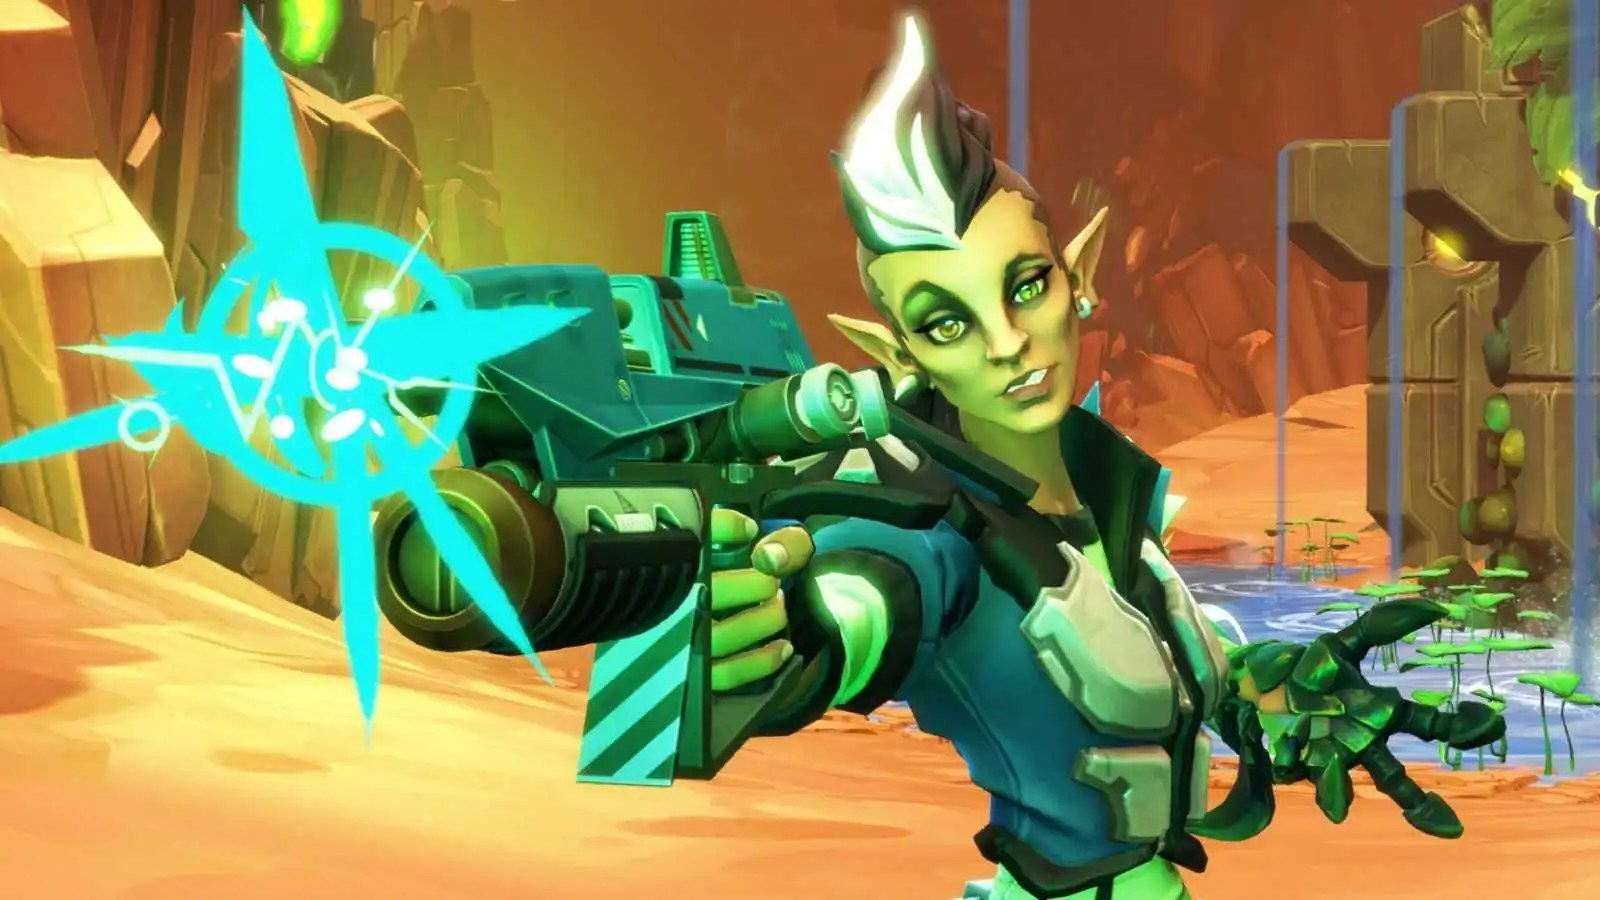 [Rumor] Battleborn diventerà presto free-to-play